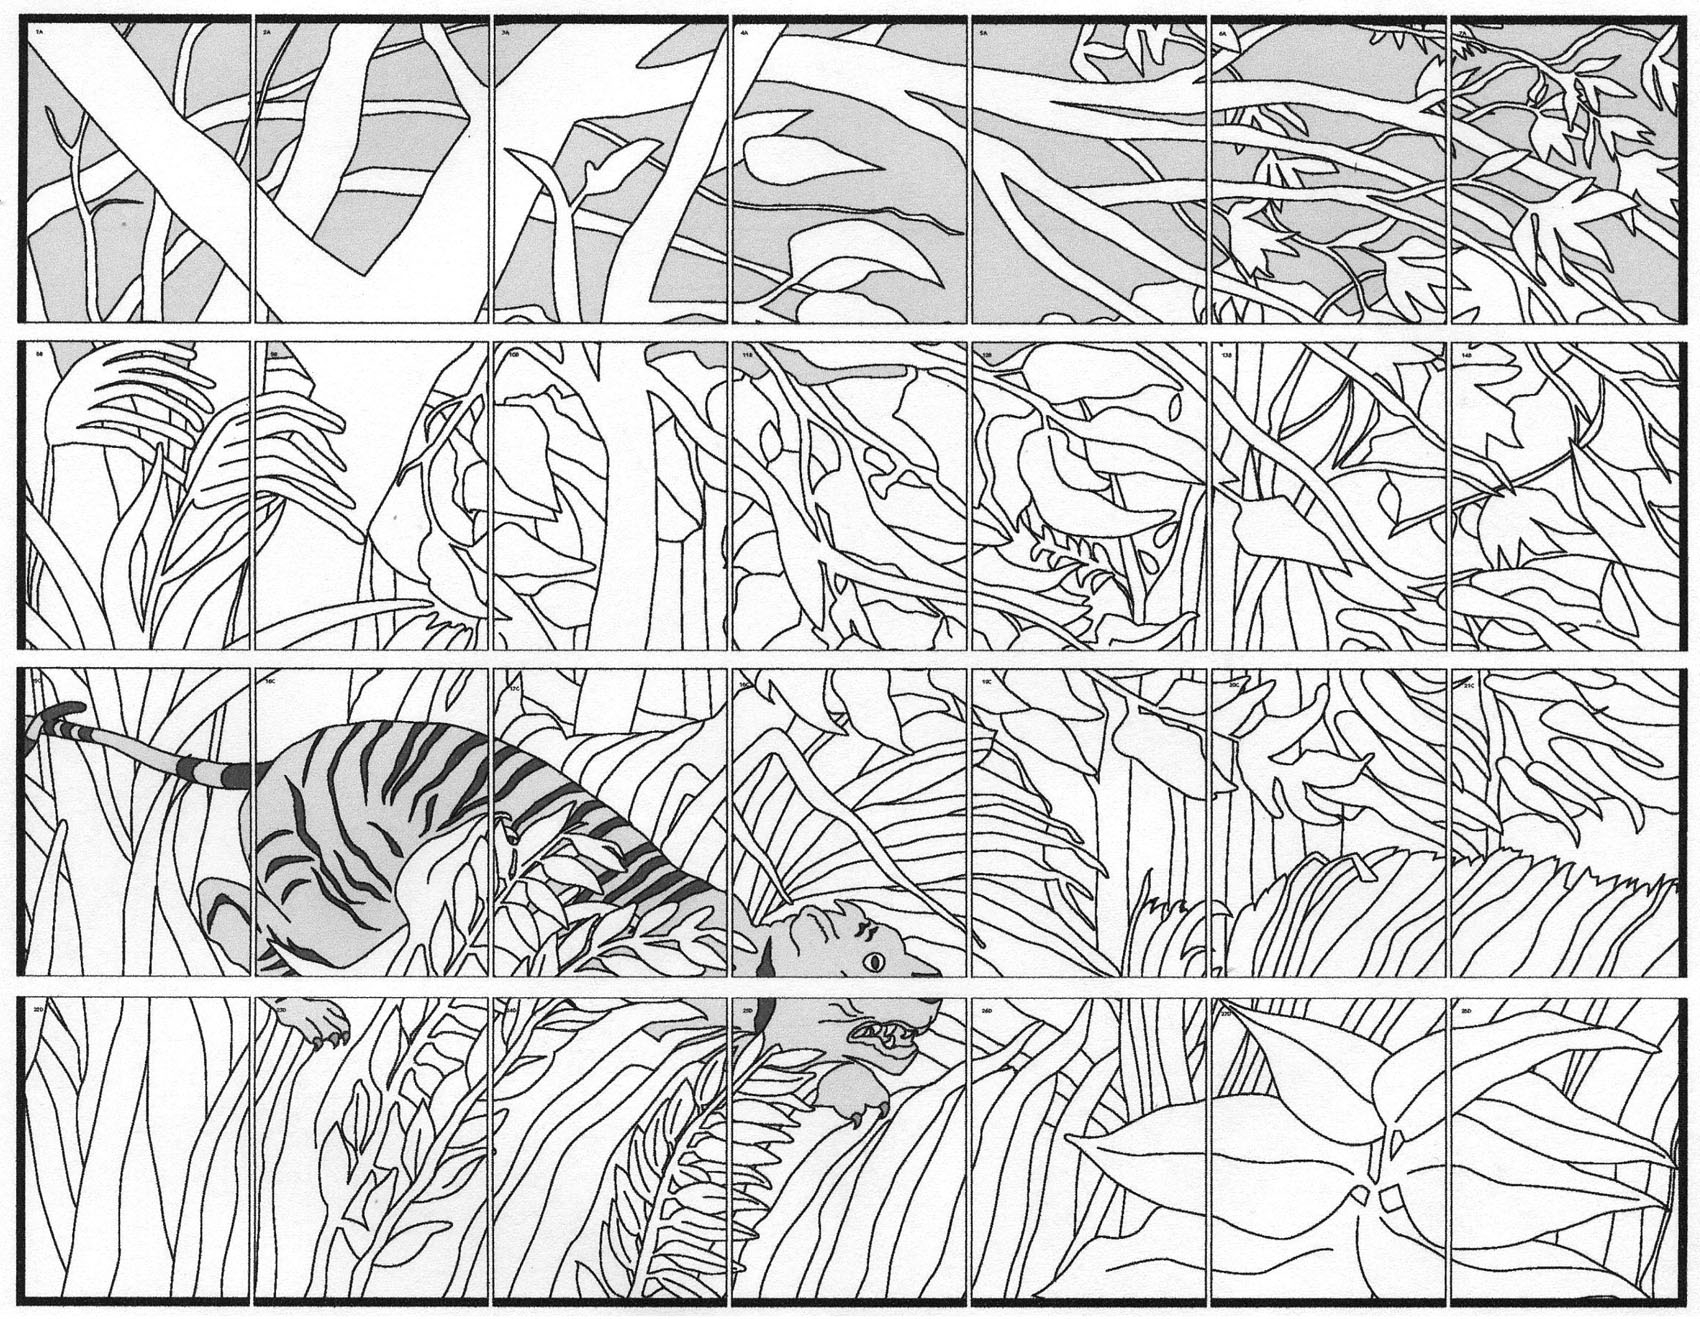 starry night coloring page - rousseau tiger mural